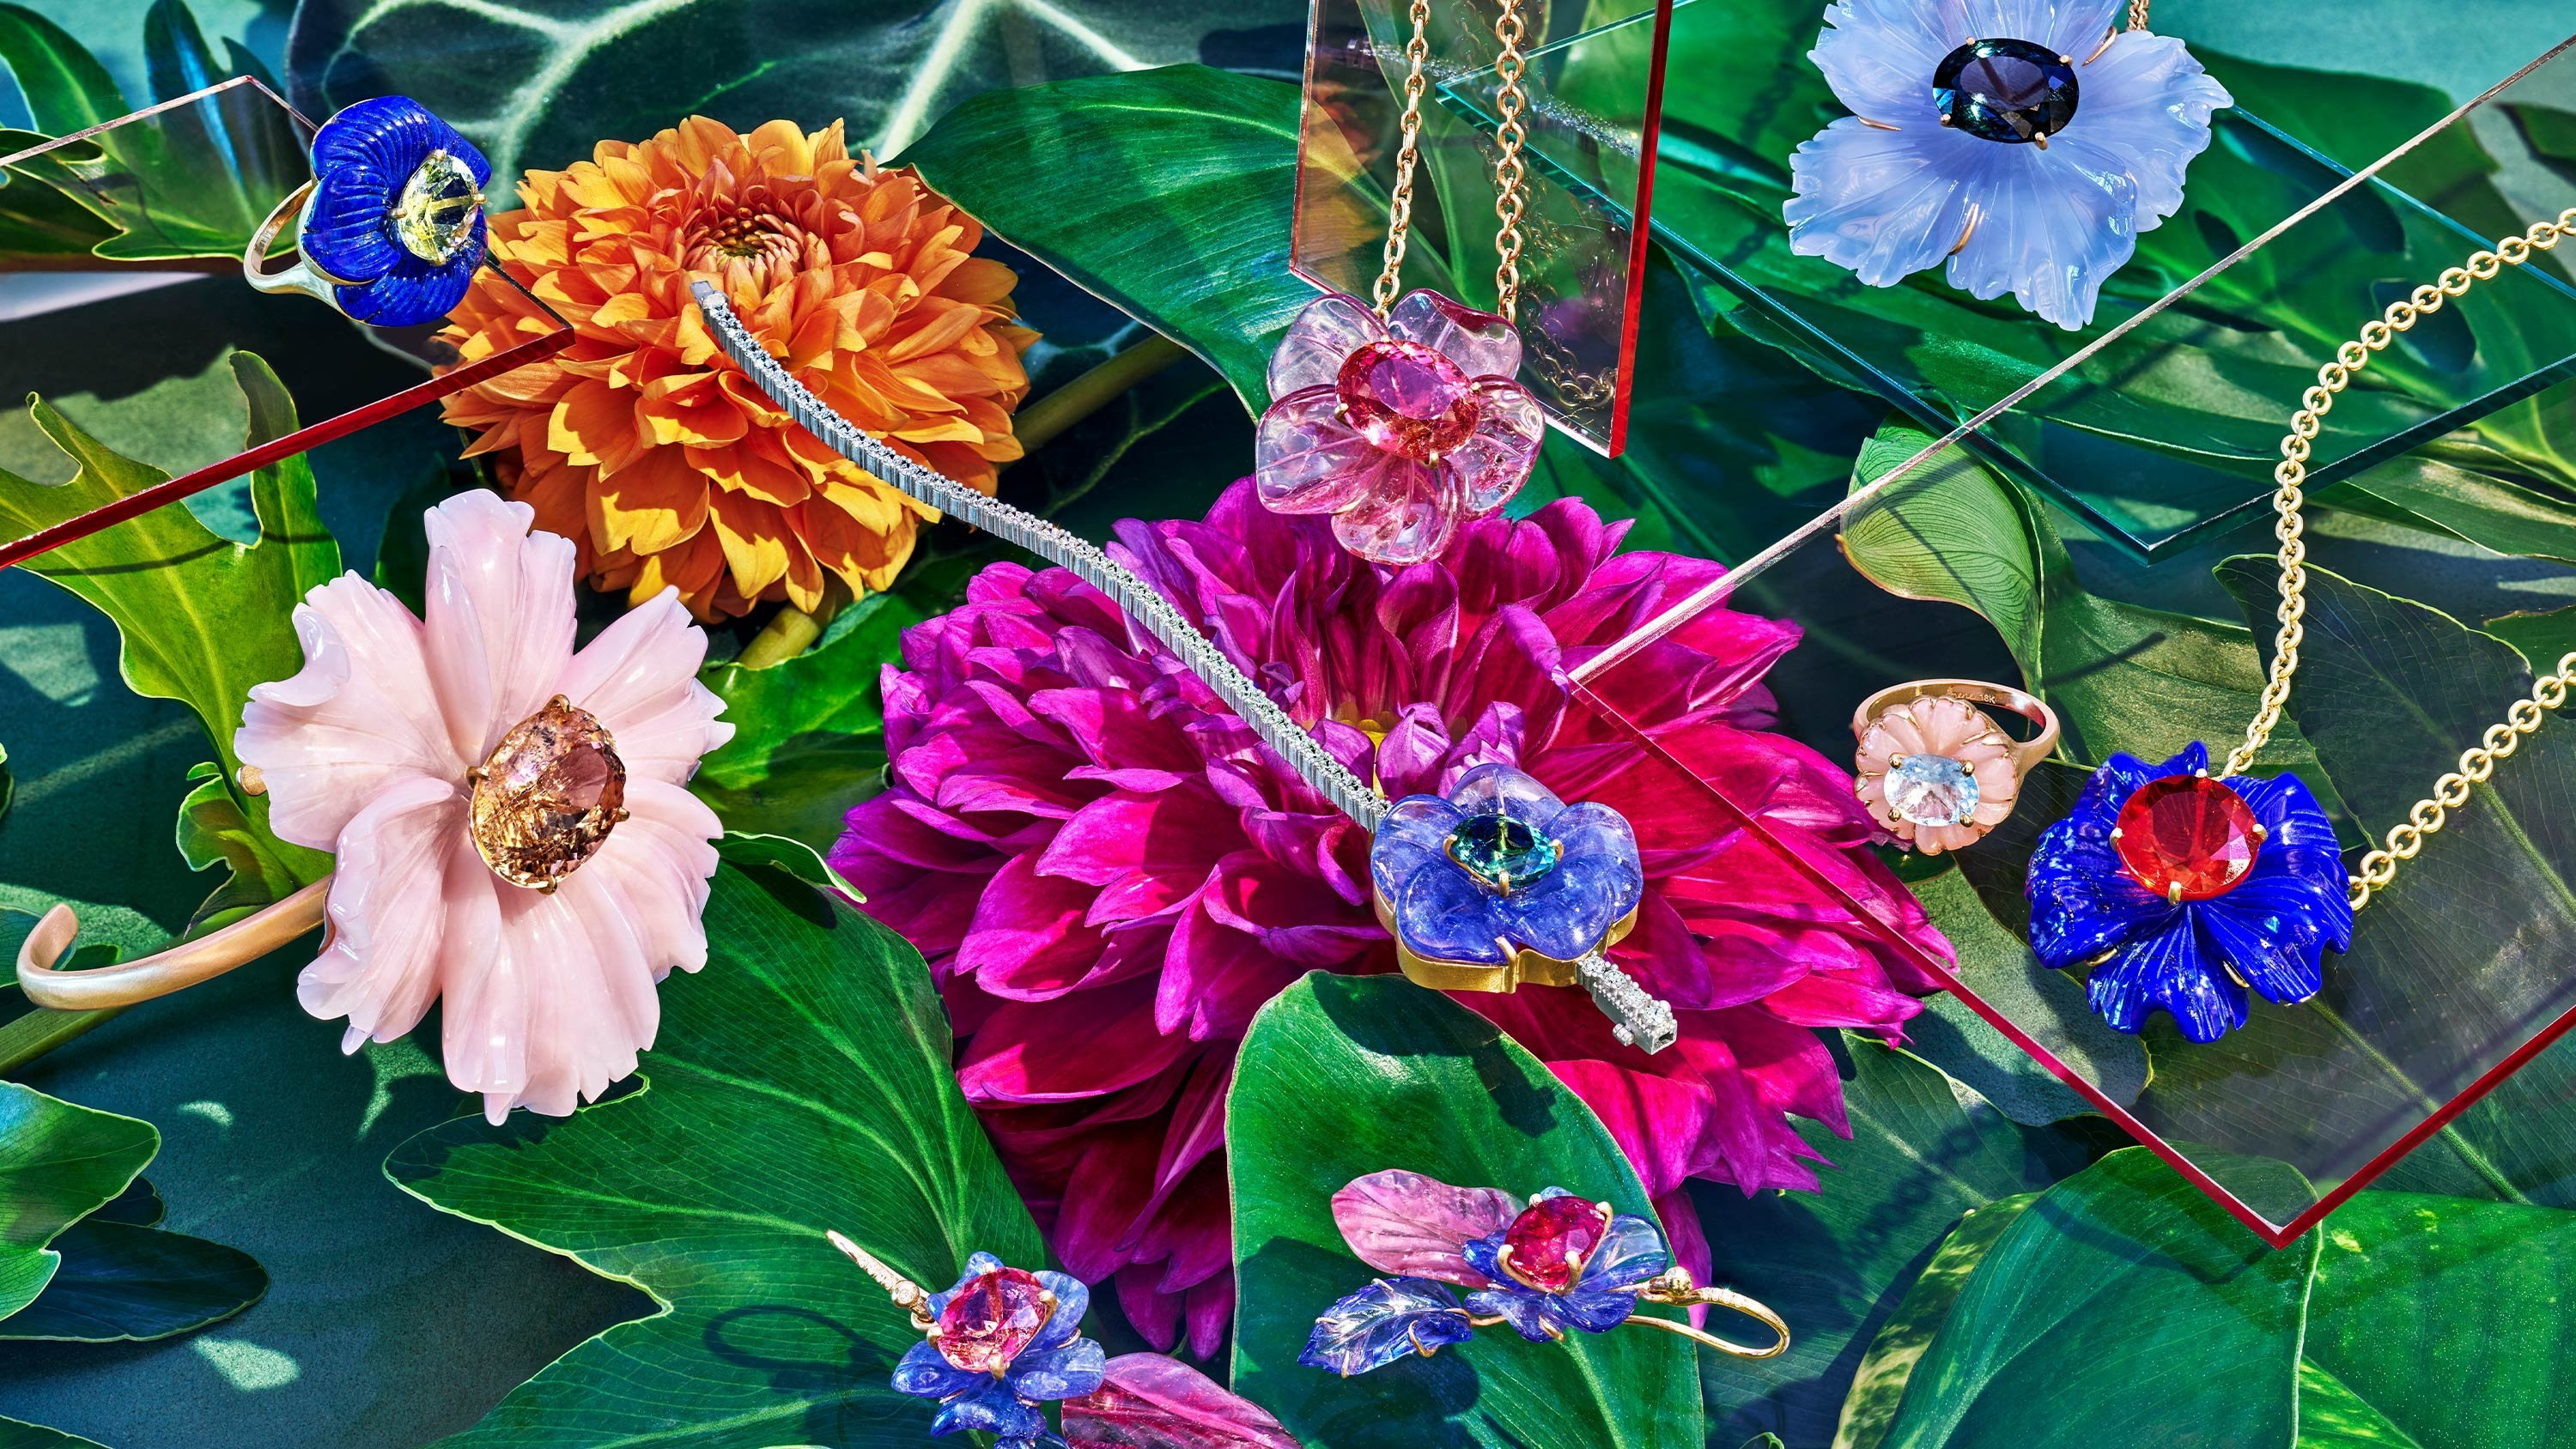 Irene Neurwirth jewelry in pink, purple, and gold atop florals creating a candy-colored garden scene. Art Direction by RoAndCo